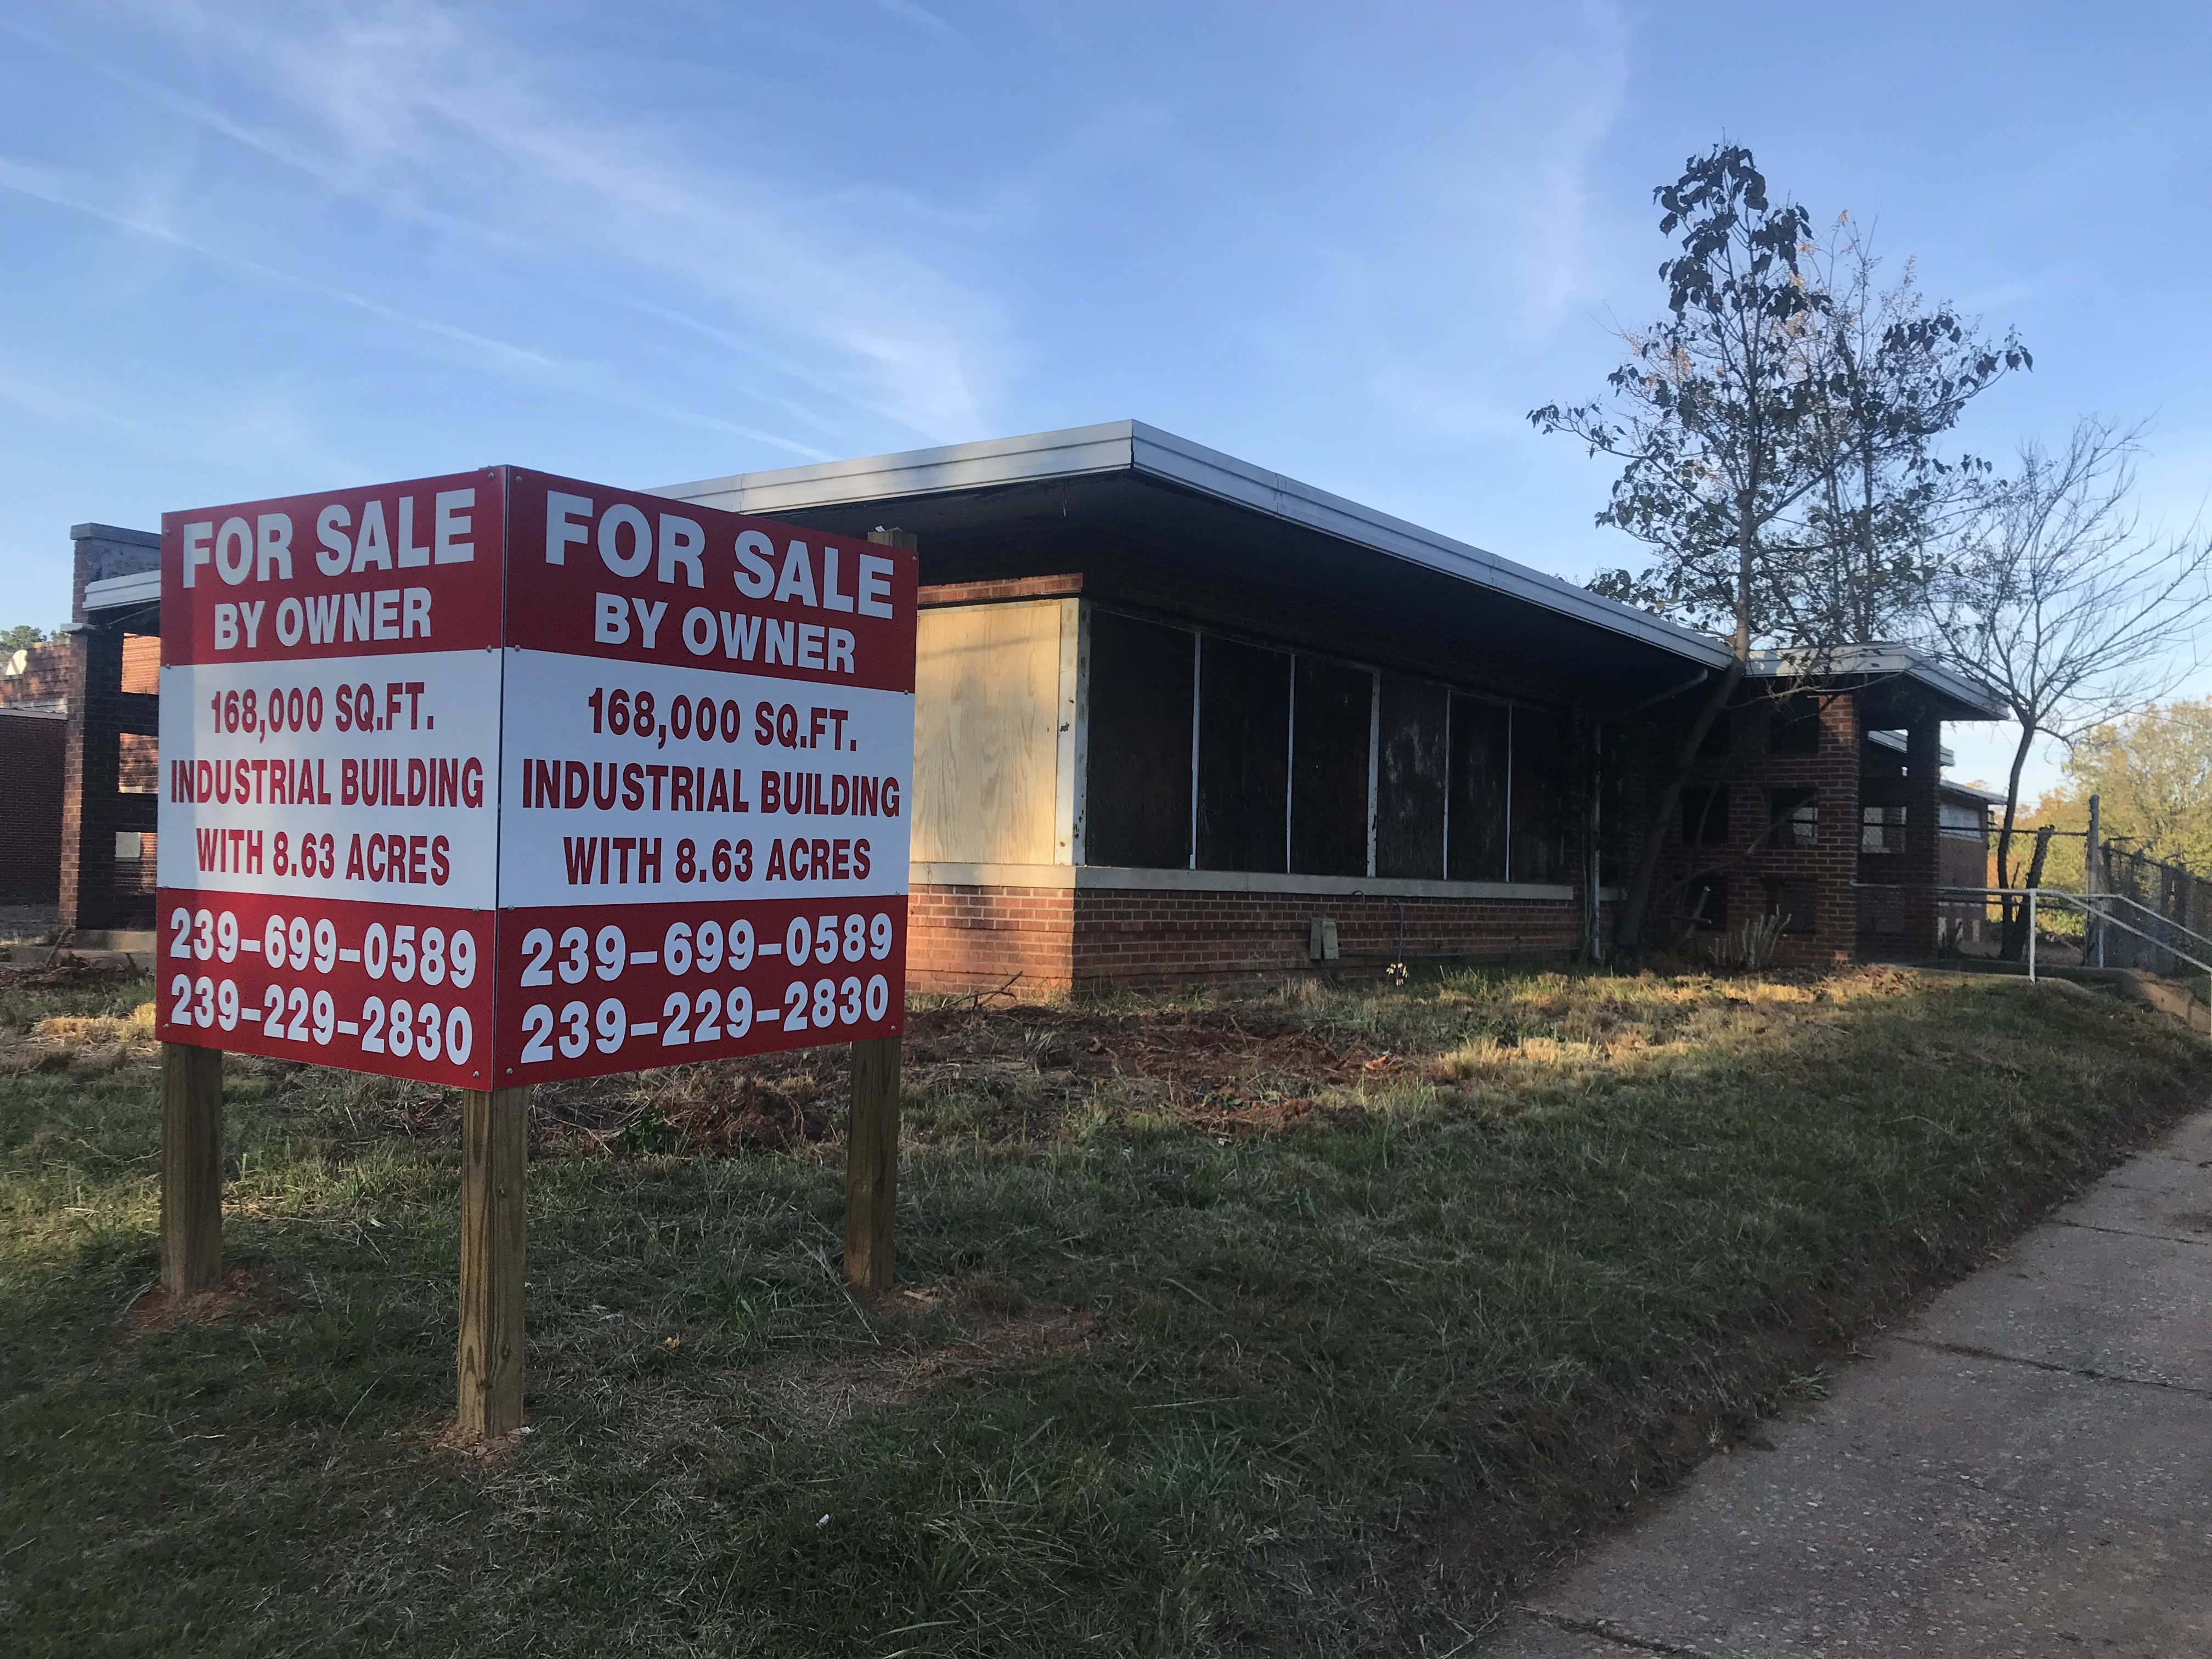 building for sale by owner